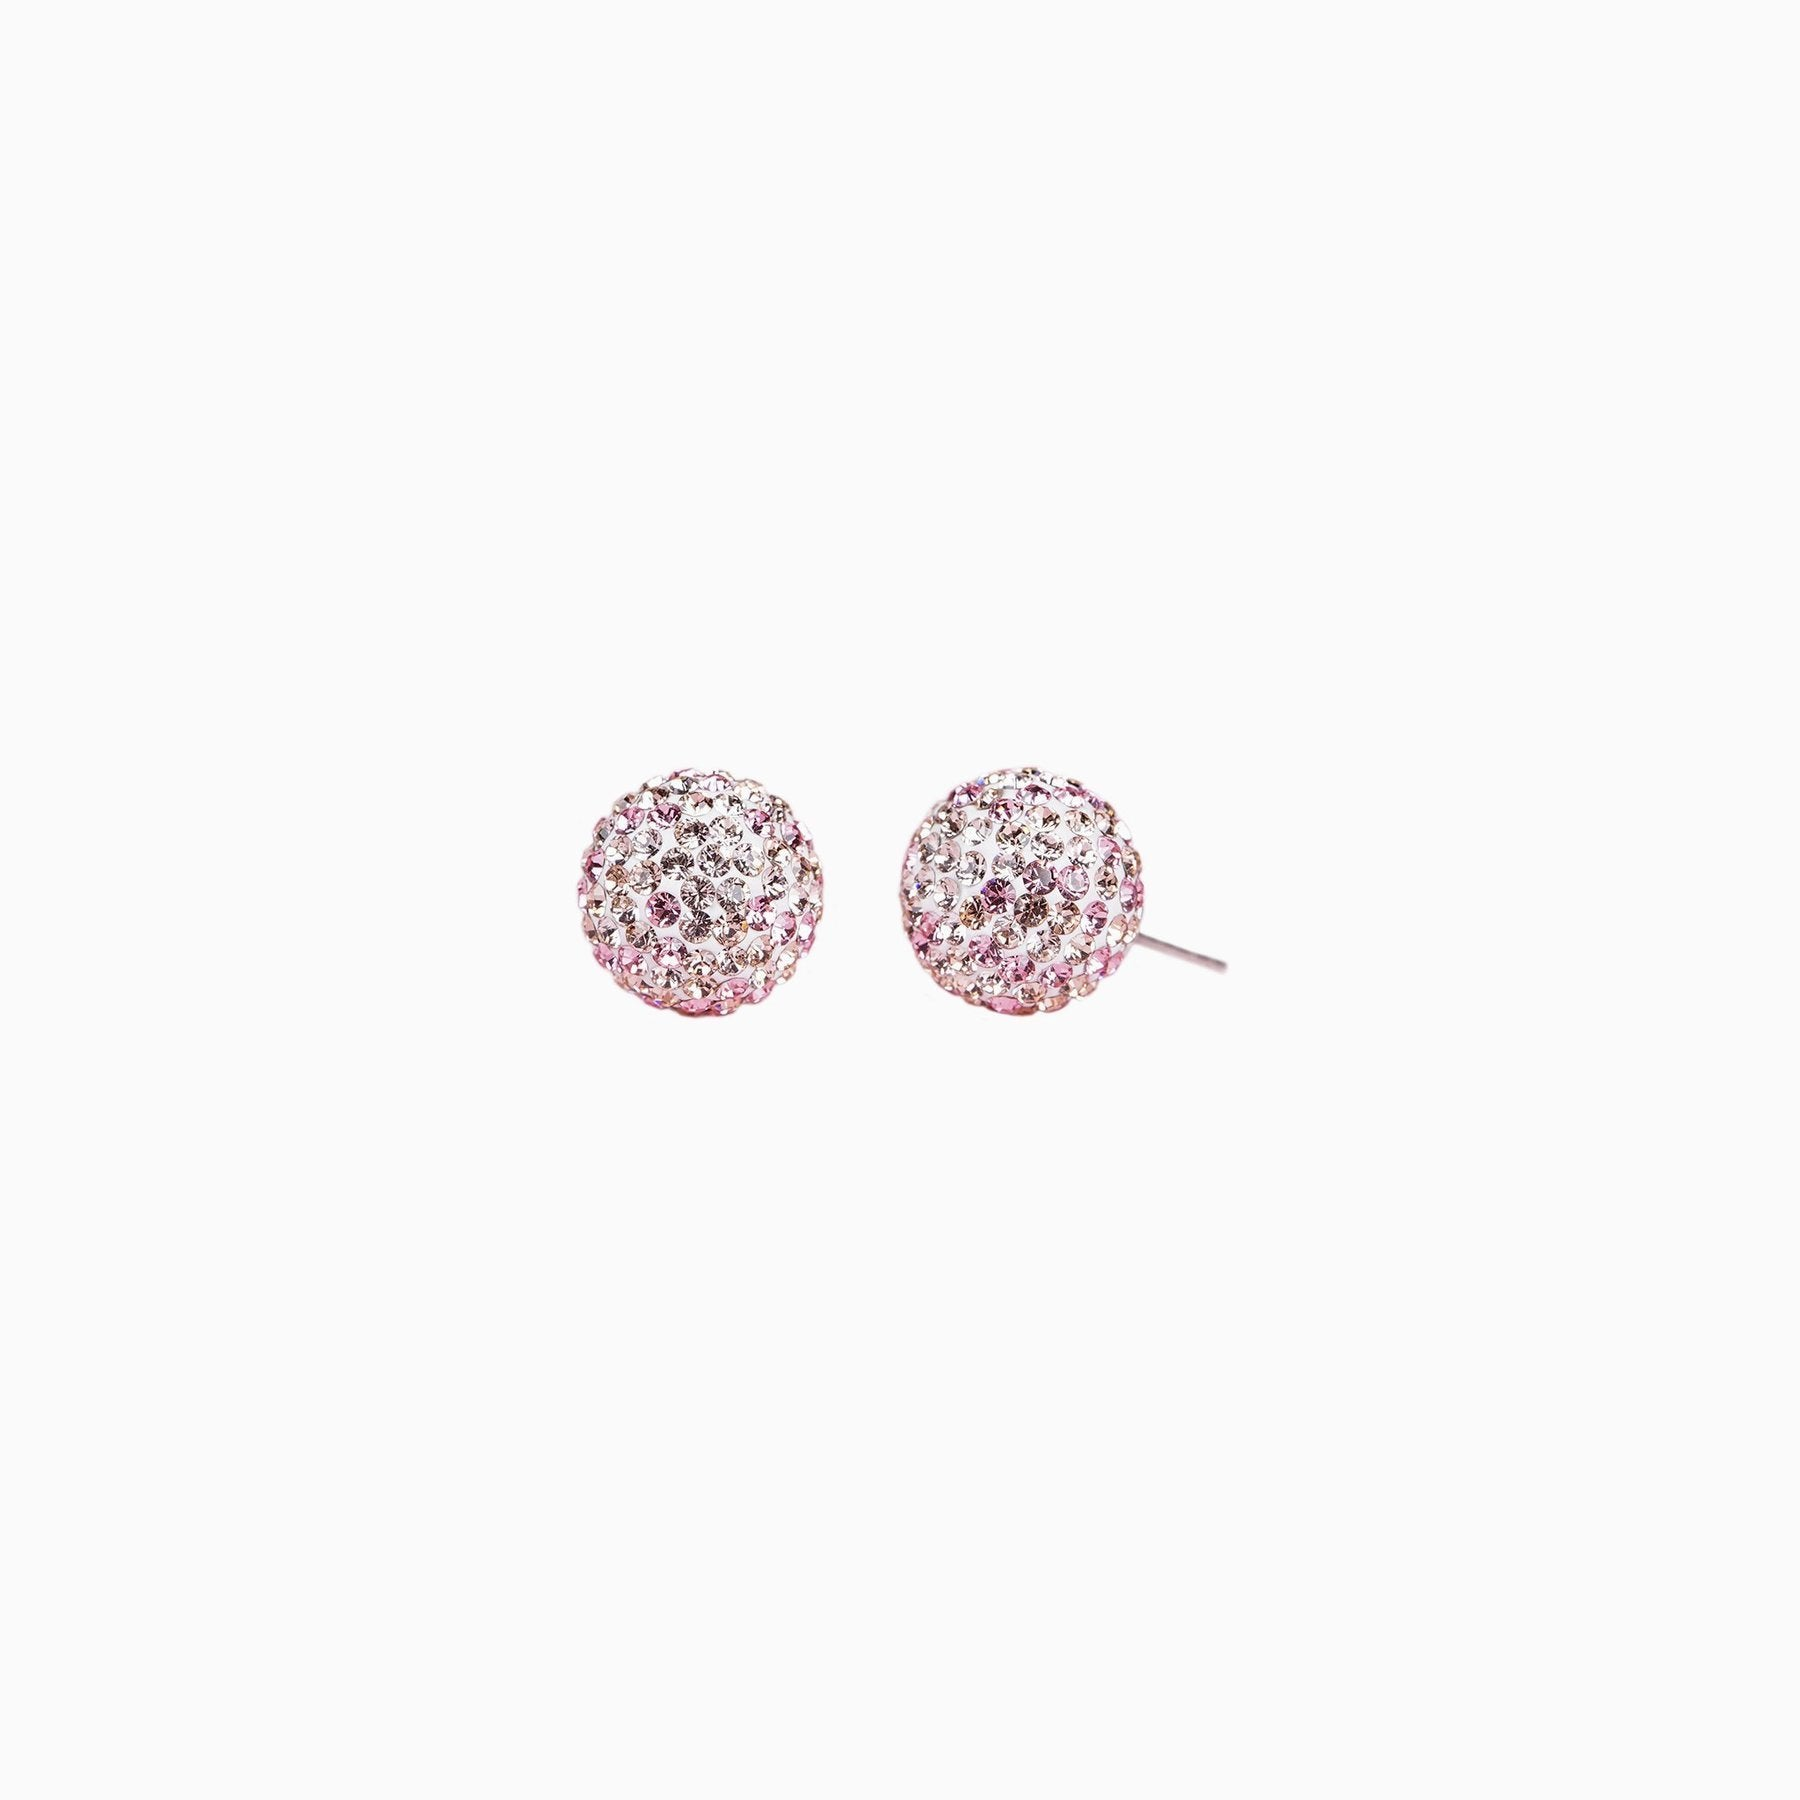 H&B Sparkle Ball™ Stud Earrings - 10mm Pink Champagne